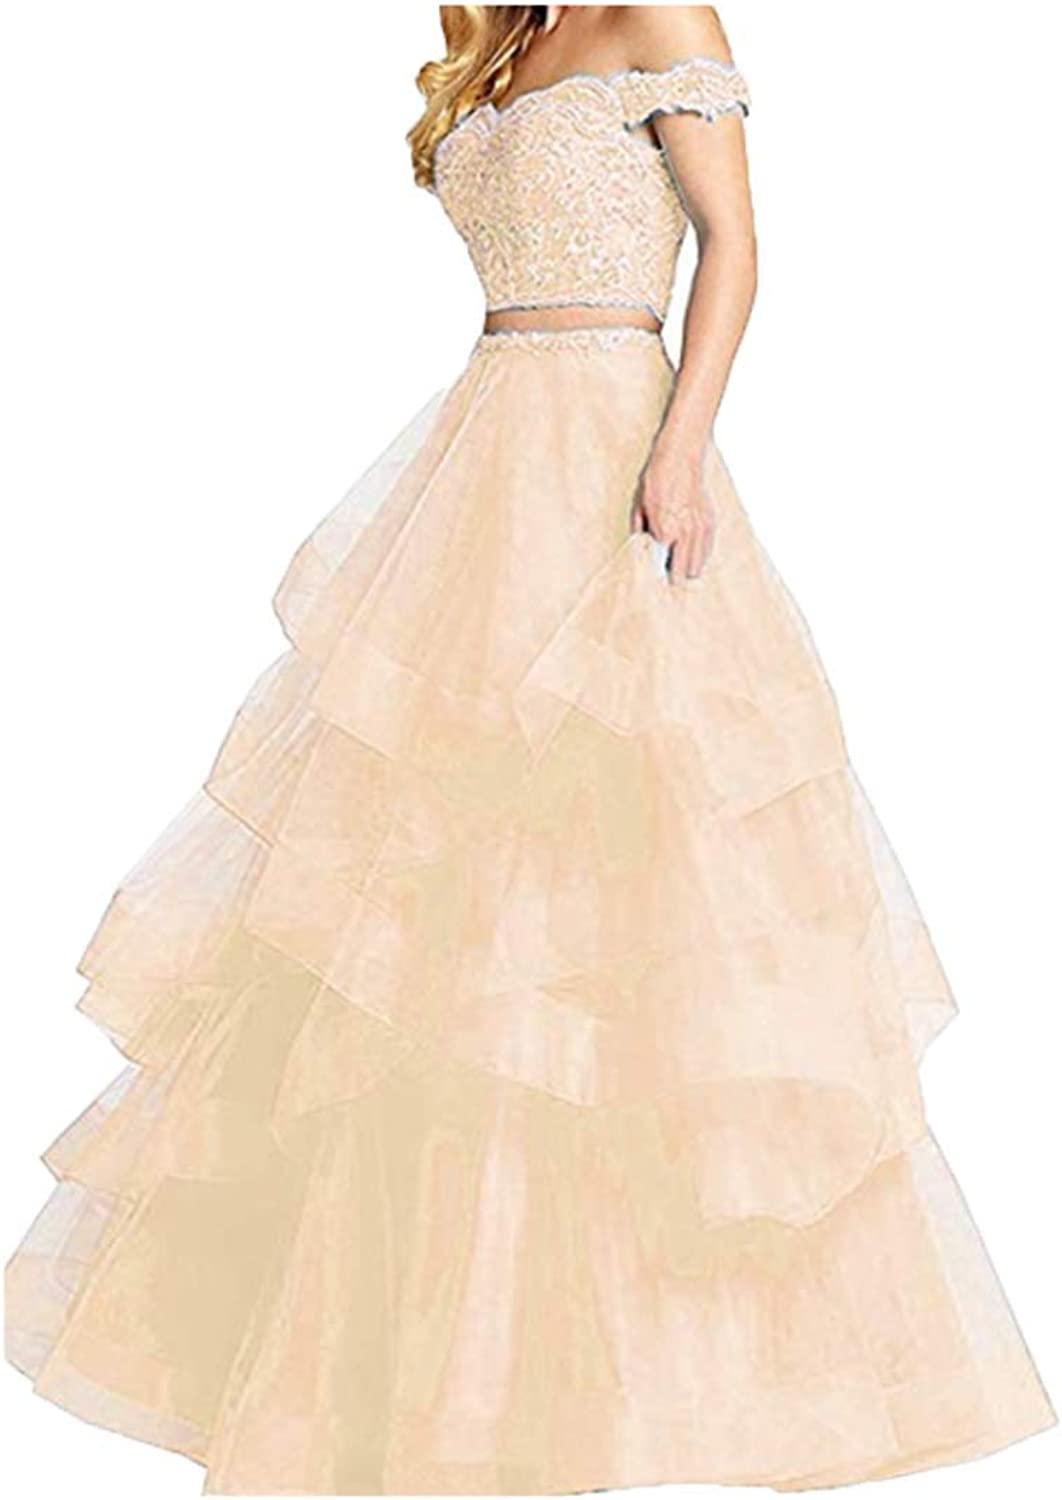 FWVR Women's Off Shoulder Lace 2 Piece Prom Dresses 2019 Ball Gown Tulle Party Gowns